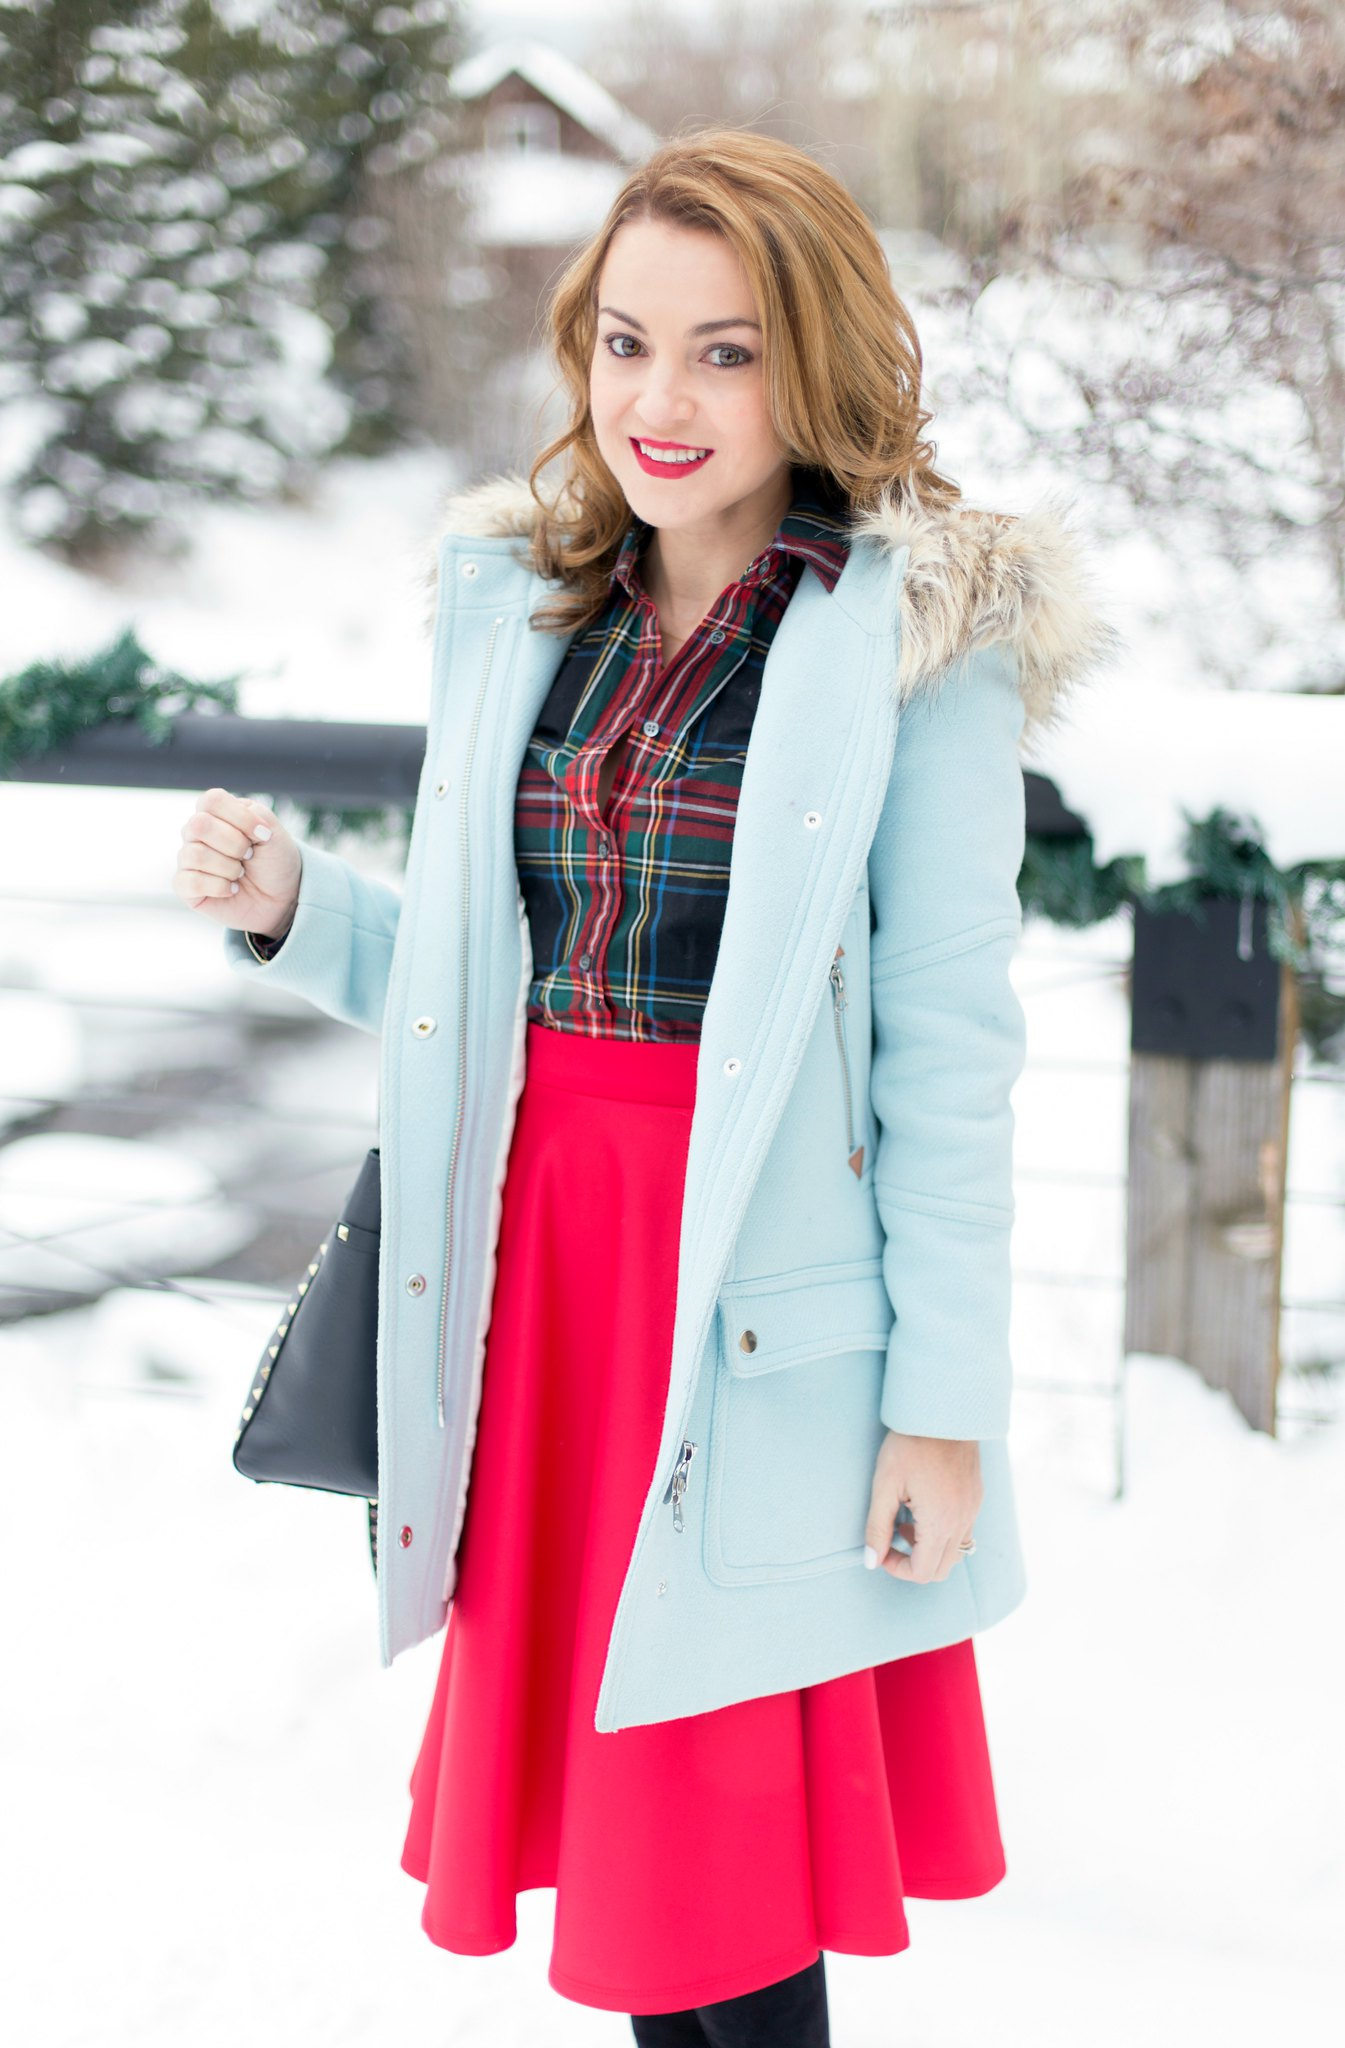 J.Crew Chateau Parka + Stewart Plaid Shirt